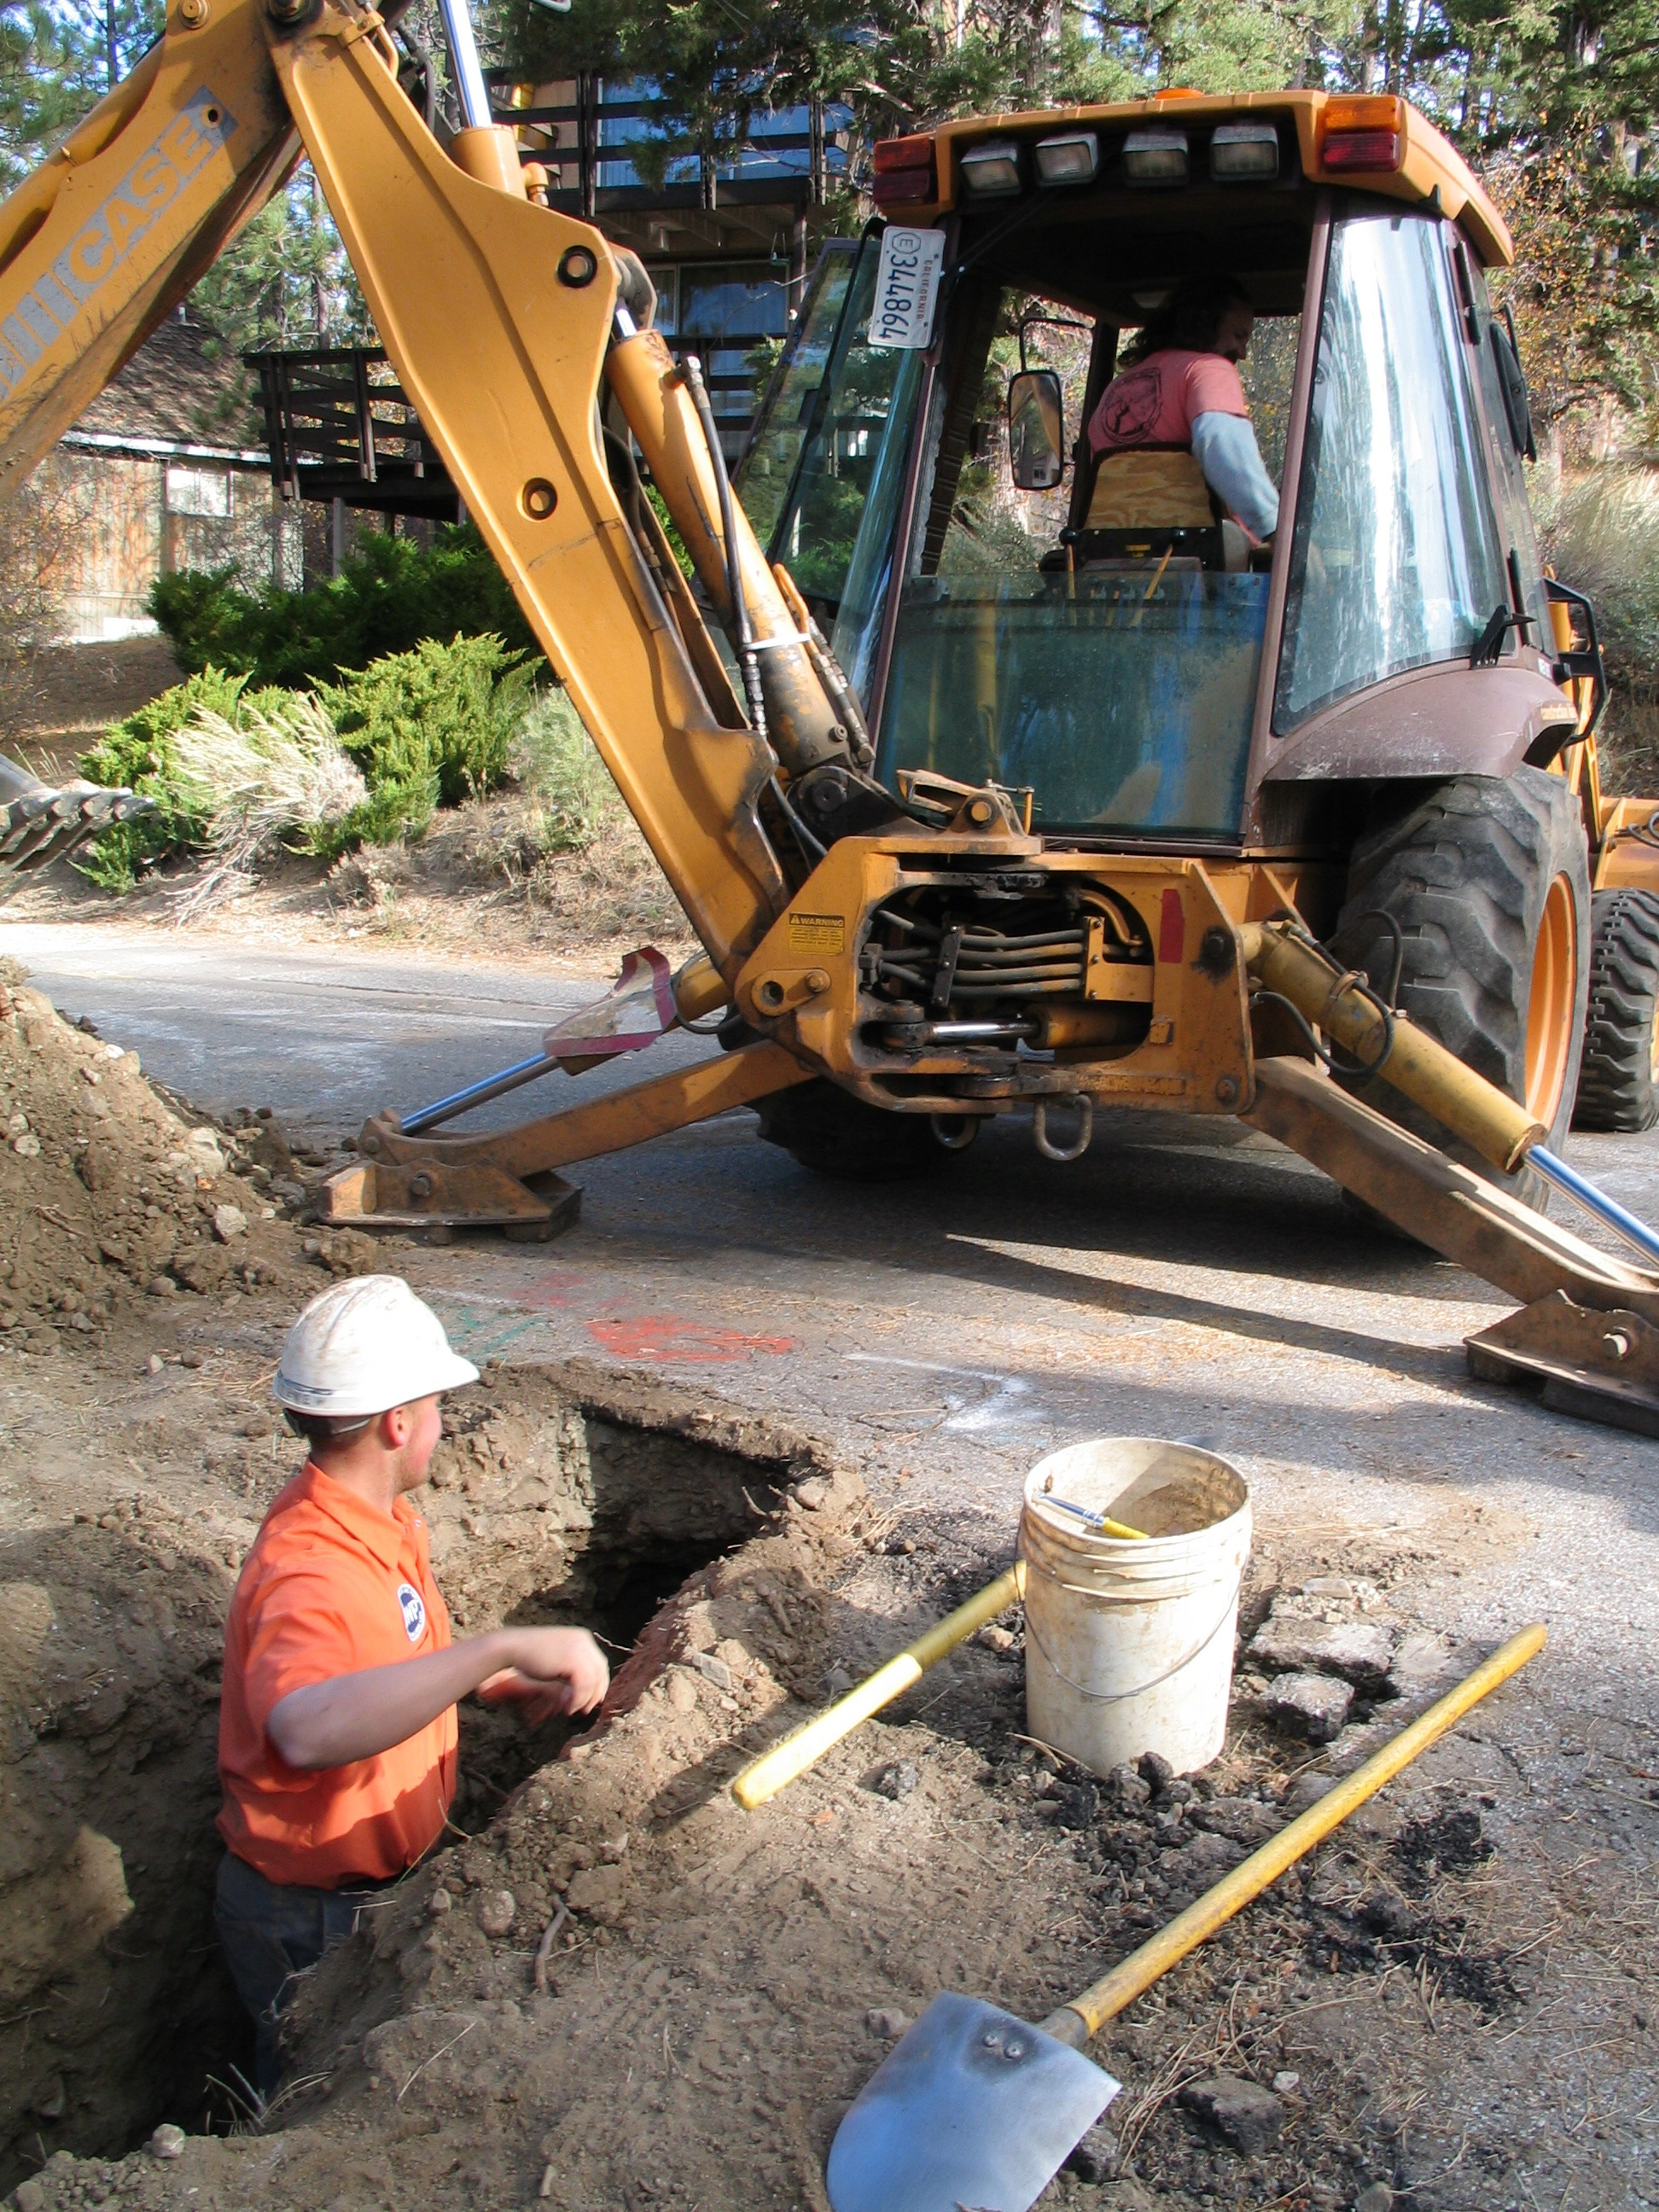 Large Equipment Digging Hole With Worker